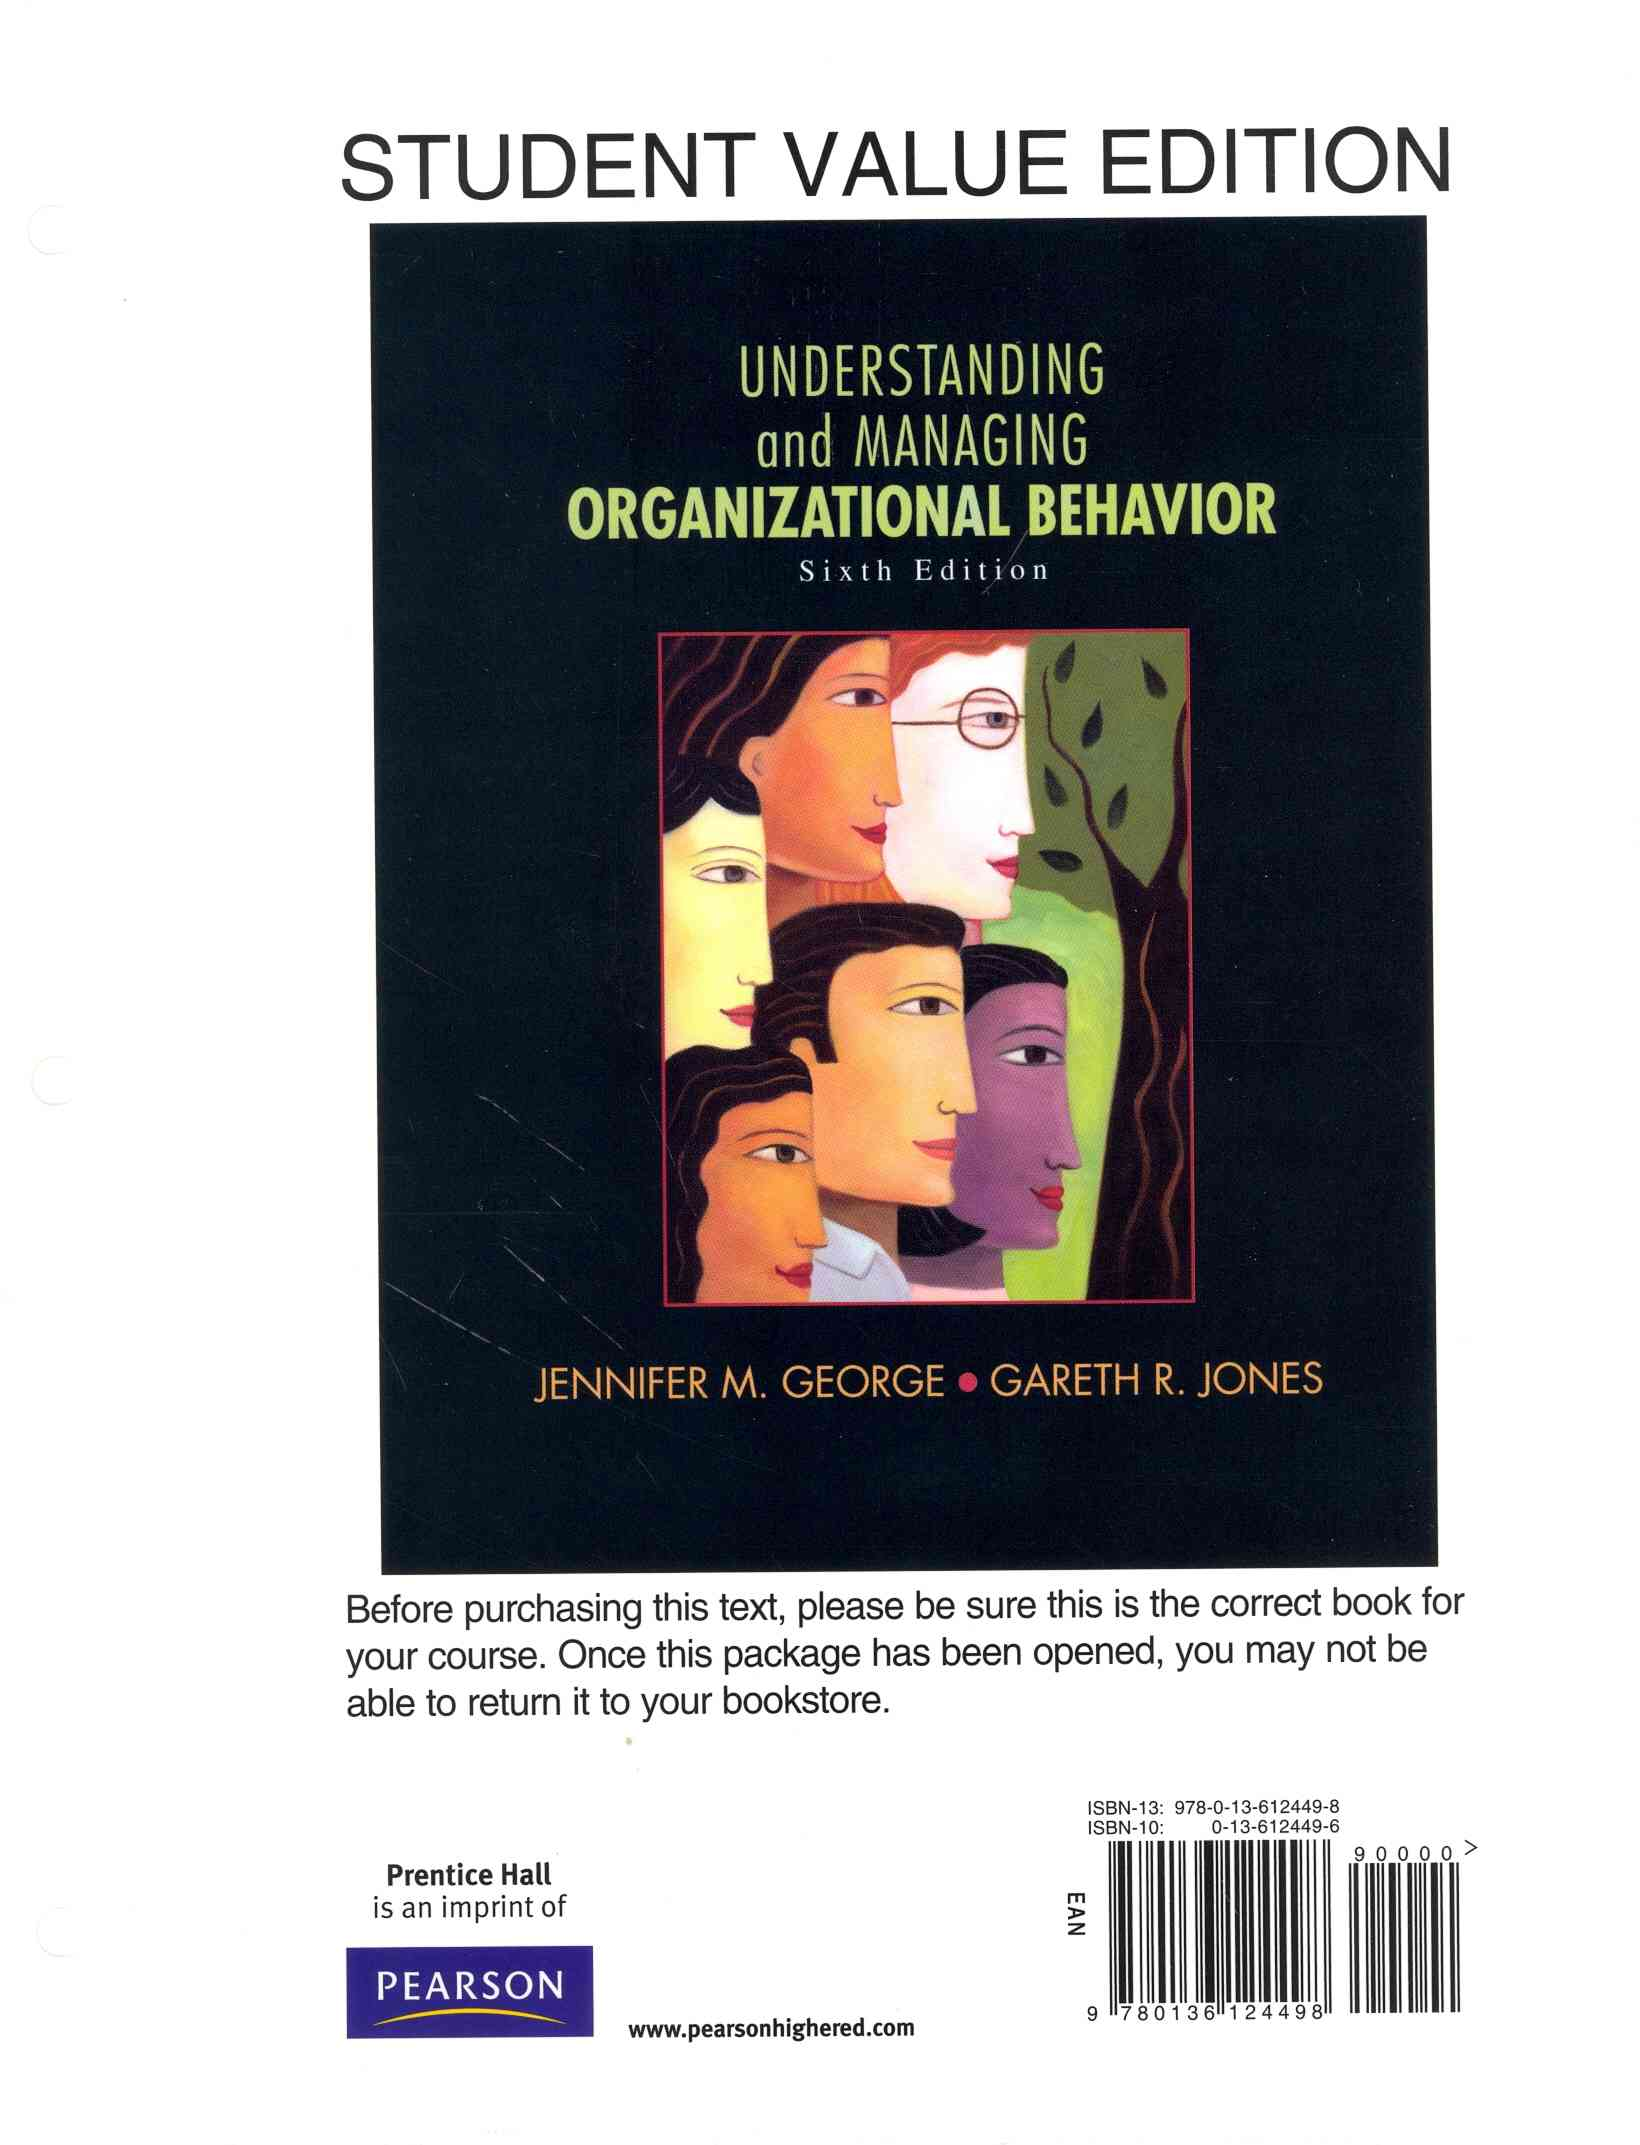 Understanding and Managing Organizational Behavior + 2014 Mymanagementlab With Pearson Etext Access Card Package By George, Jennifer M./ Jones, Gareth R.